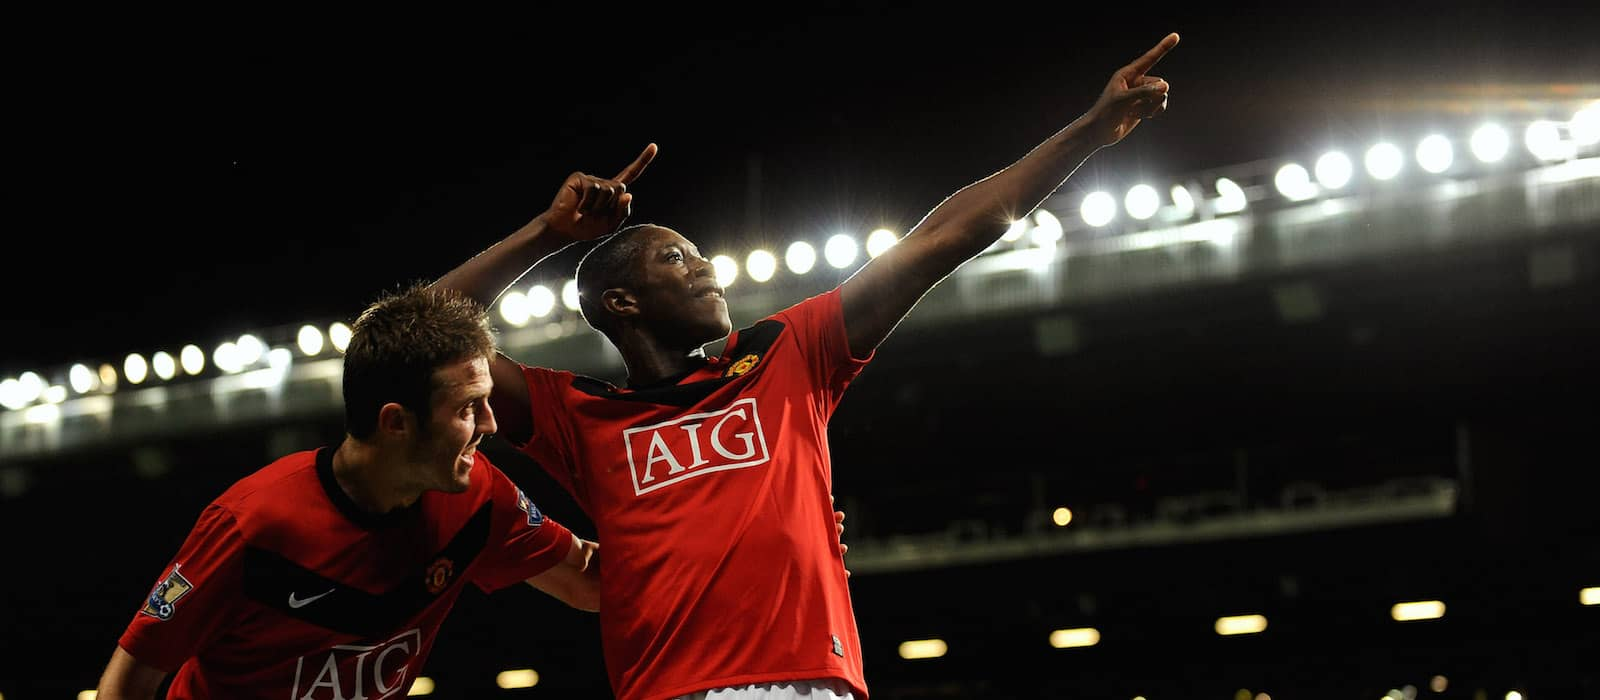 Louis van Gaal was wrong to sell Cleverley and Welbeck, claims Rio Ferdinand